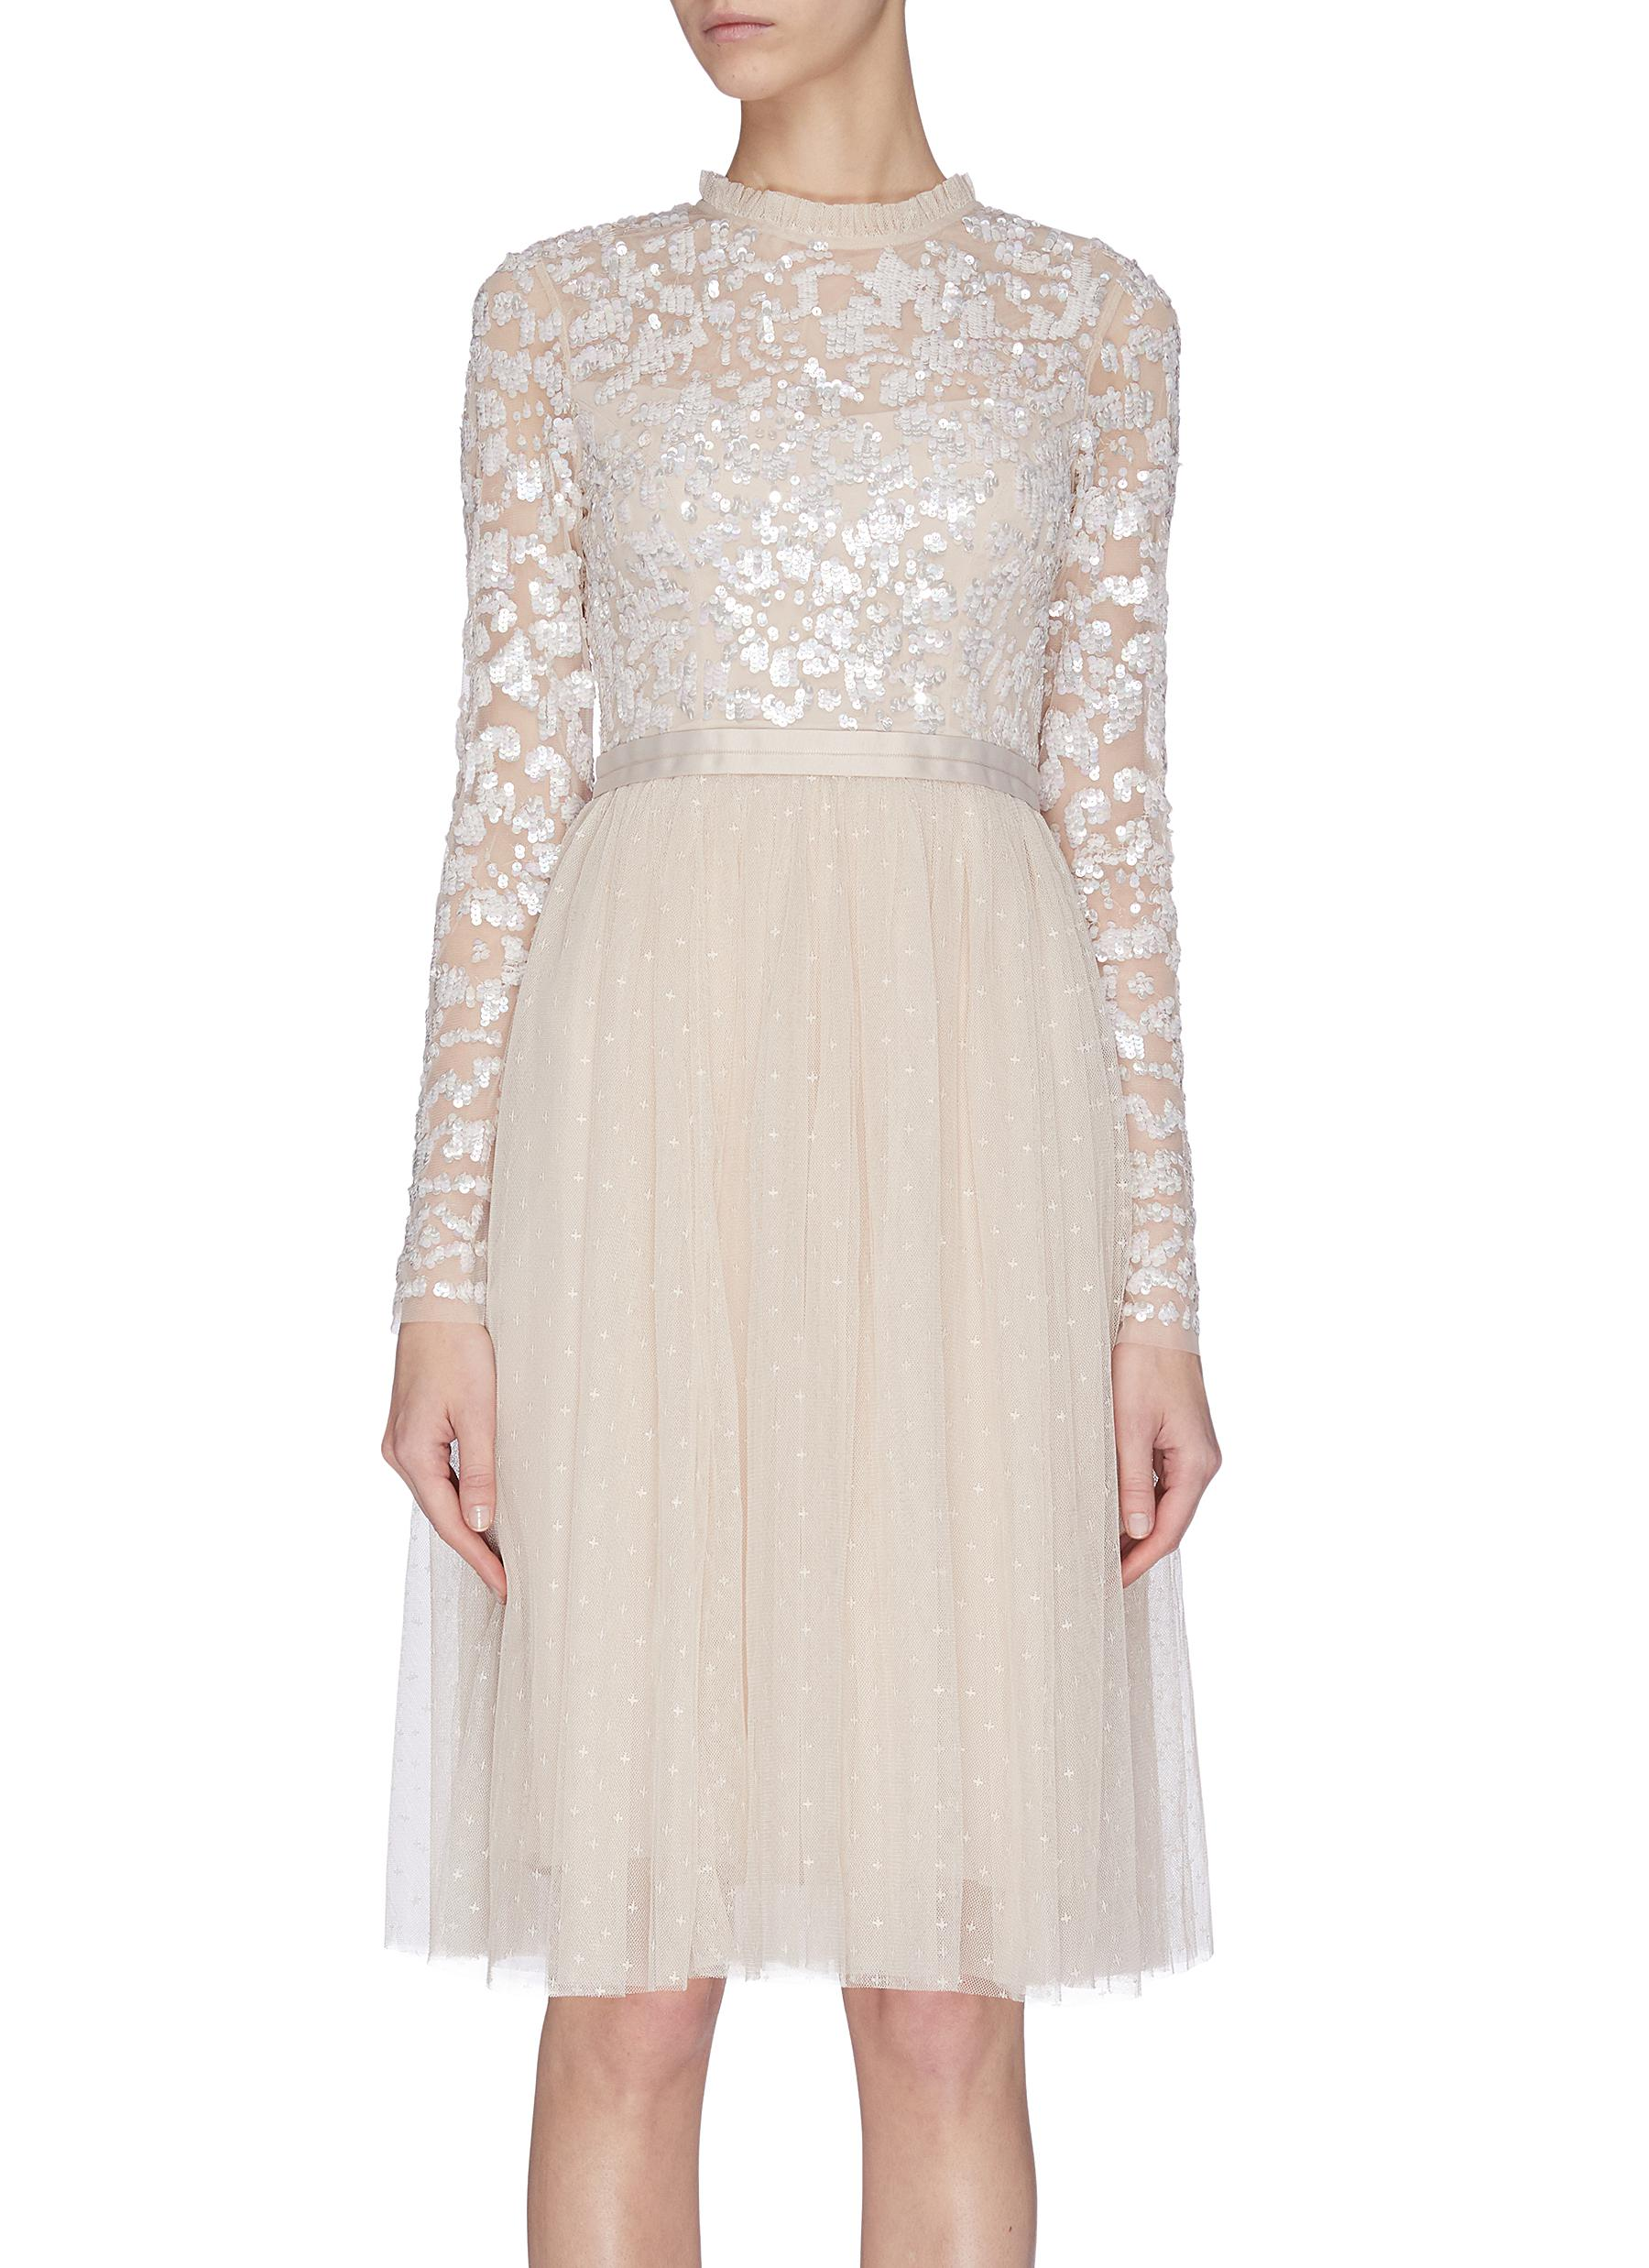 Buy Needle & Thread Dresses 'Tempest' sequin embroidered bodice dress